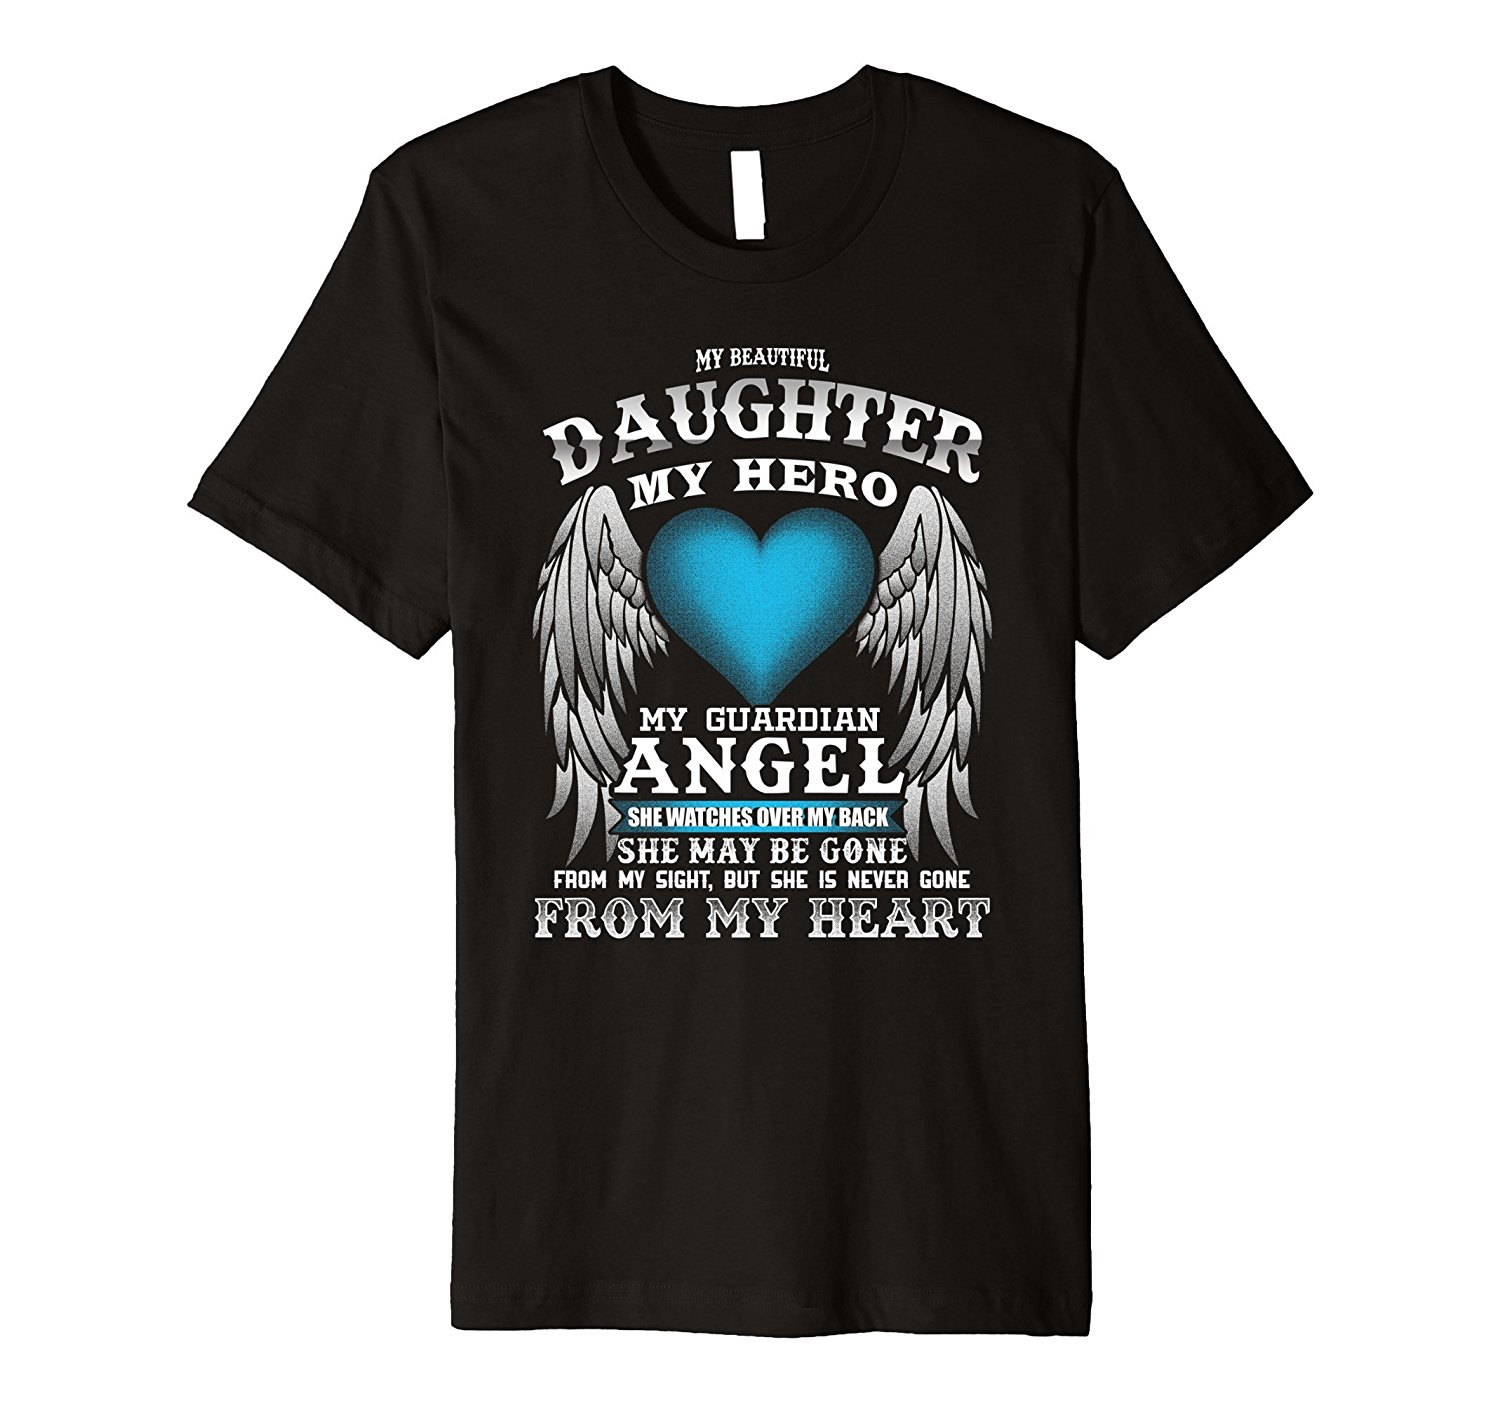 My Guardian Angel Daughter! In Remembrance PREMIUM Tee